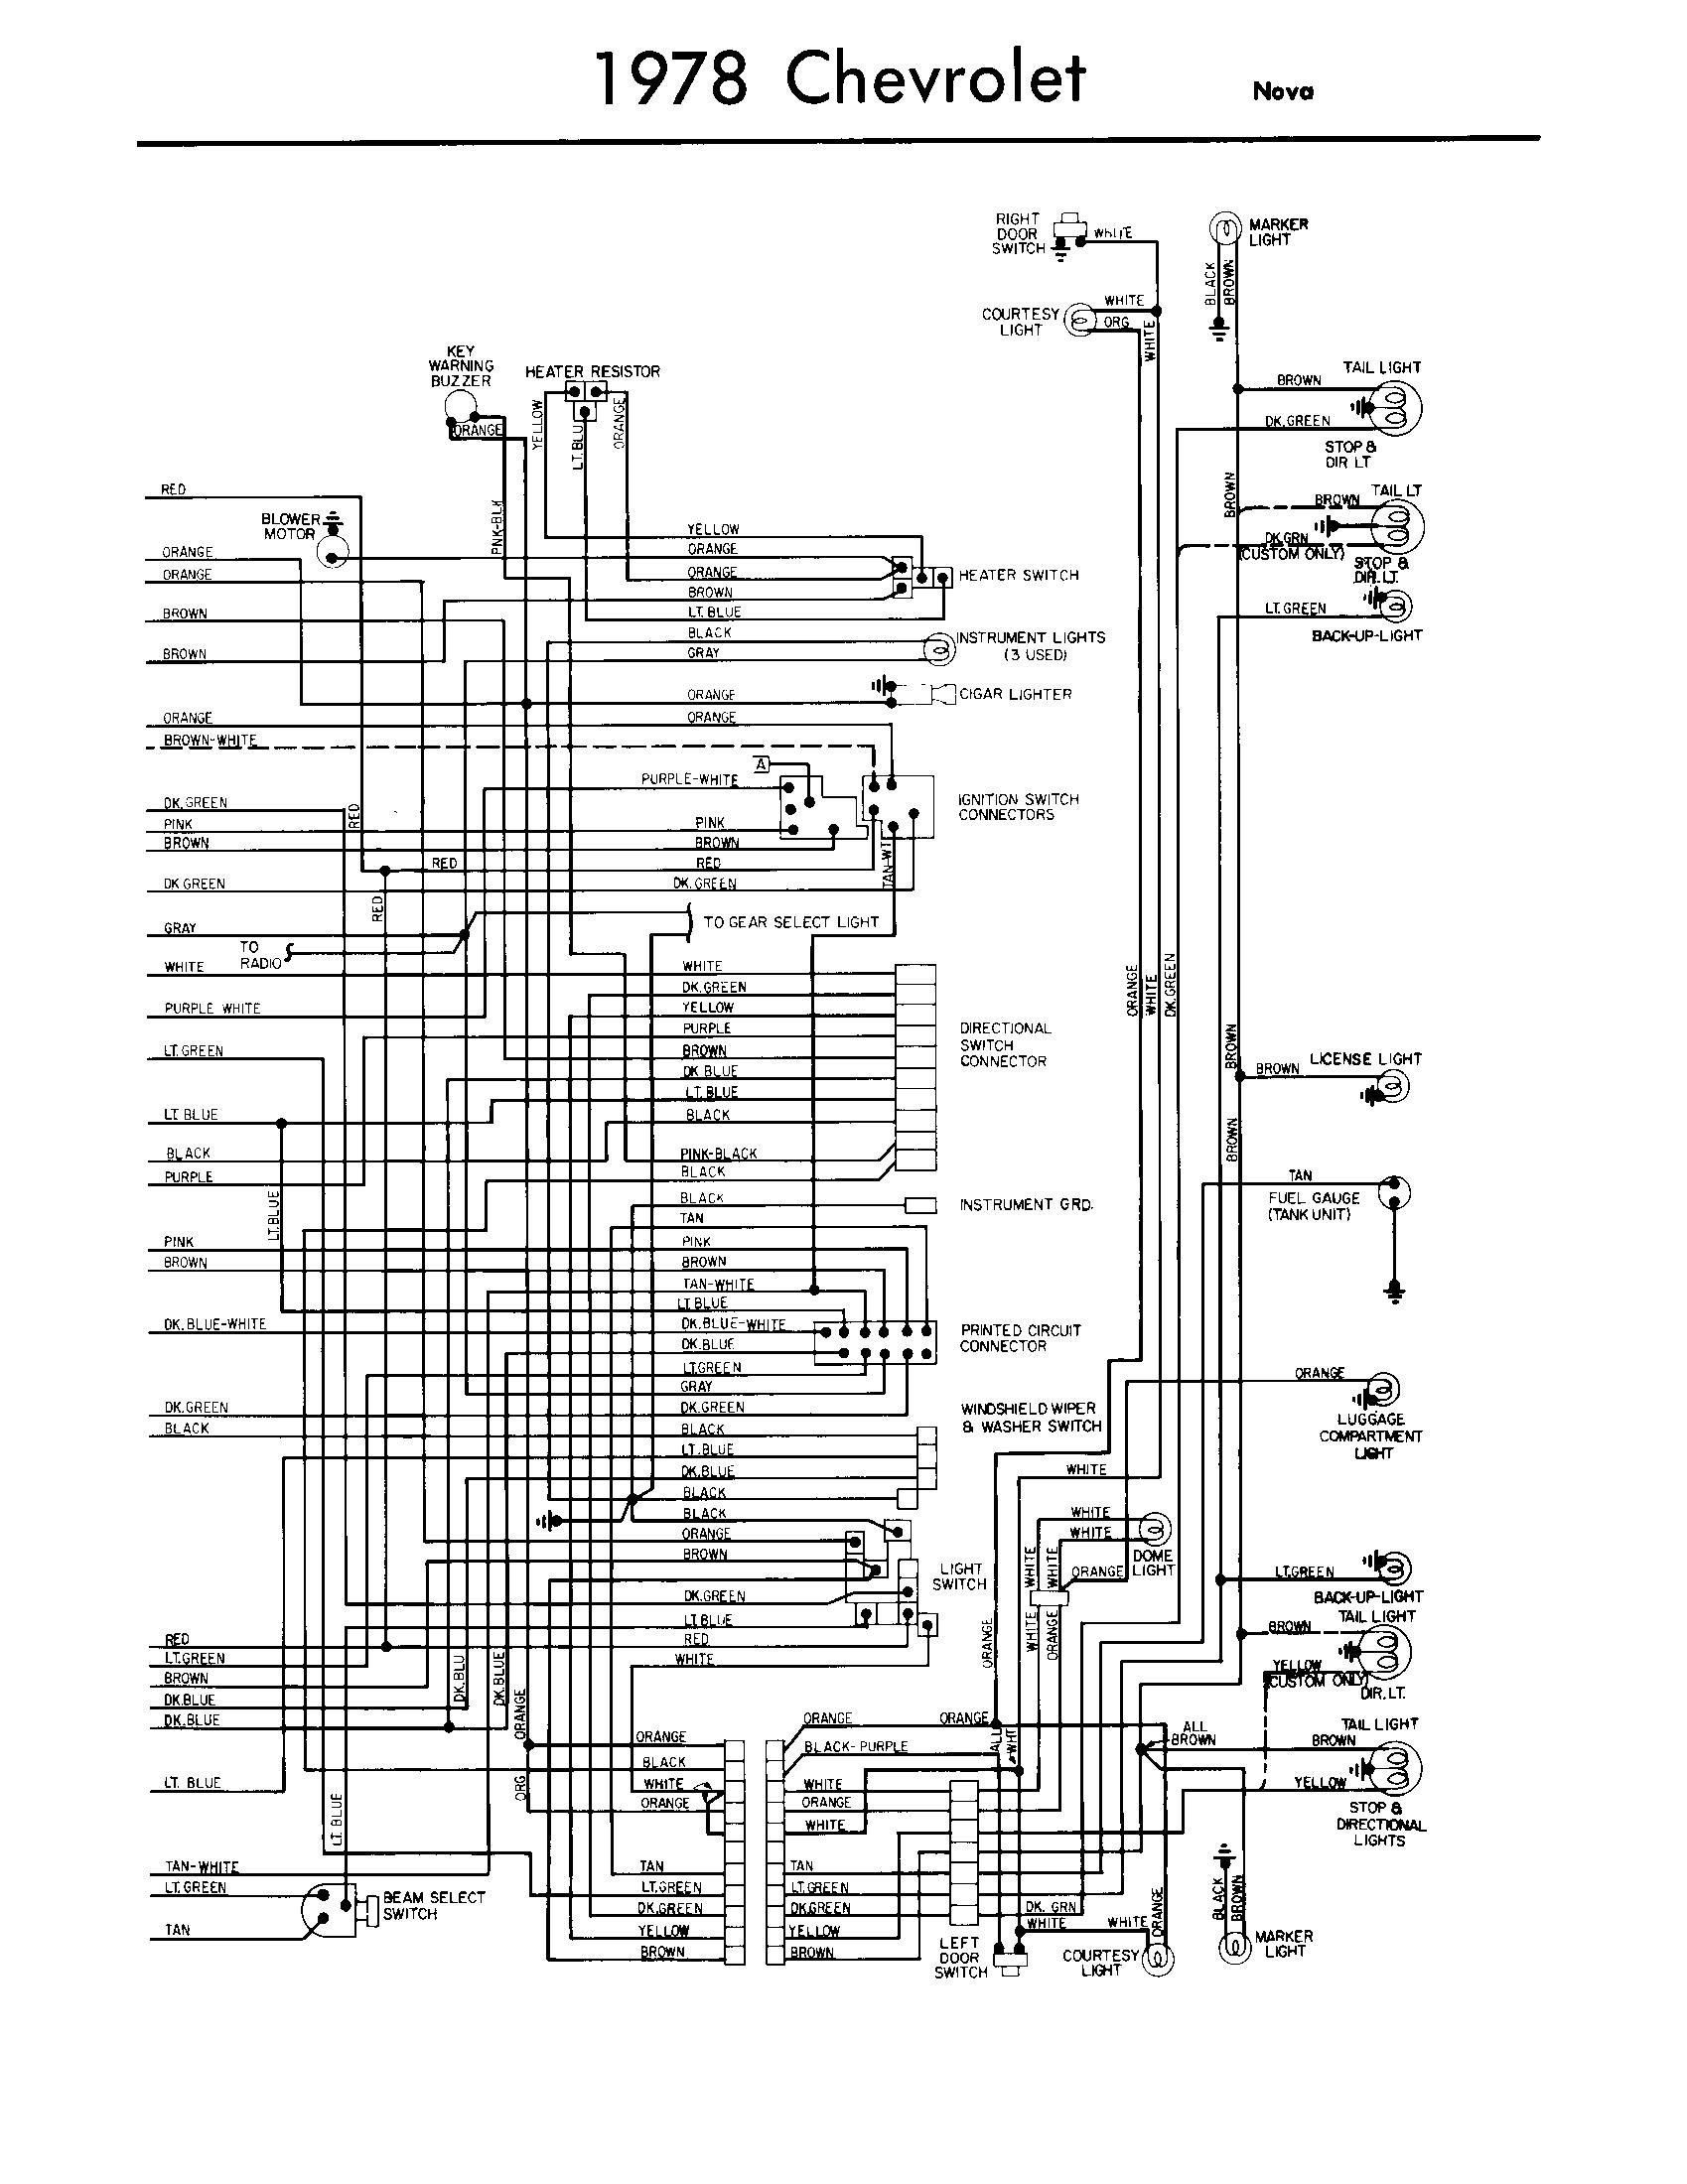 Wiring Diagram For 1969 Nova Free Download - Electrical ... on hvac diagrams, transformer diagrams, smart car diagrams, battery diagrams, internet of things diagrams, troubleshooting diagrams, pinout diagrams, led circuit diagrams, gmc fuse box diagrams, electronic circuit diagrams, engine diagrams, friendship bracelet diagrams, series and parallel circuits diagrams, sincgars radio configurations diagrams, motor diagrams, lighting diagrams, switch diagrams, electrical diagrams, honda motorcycle repair diagrams,